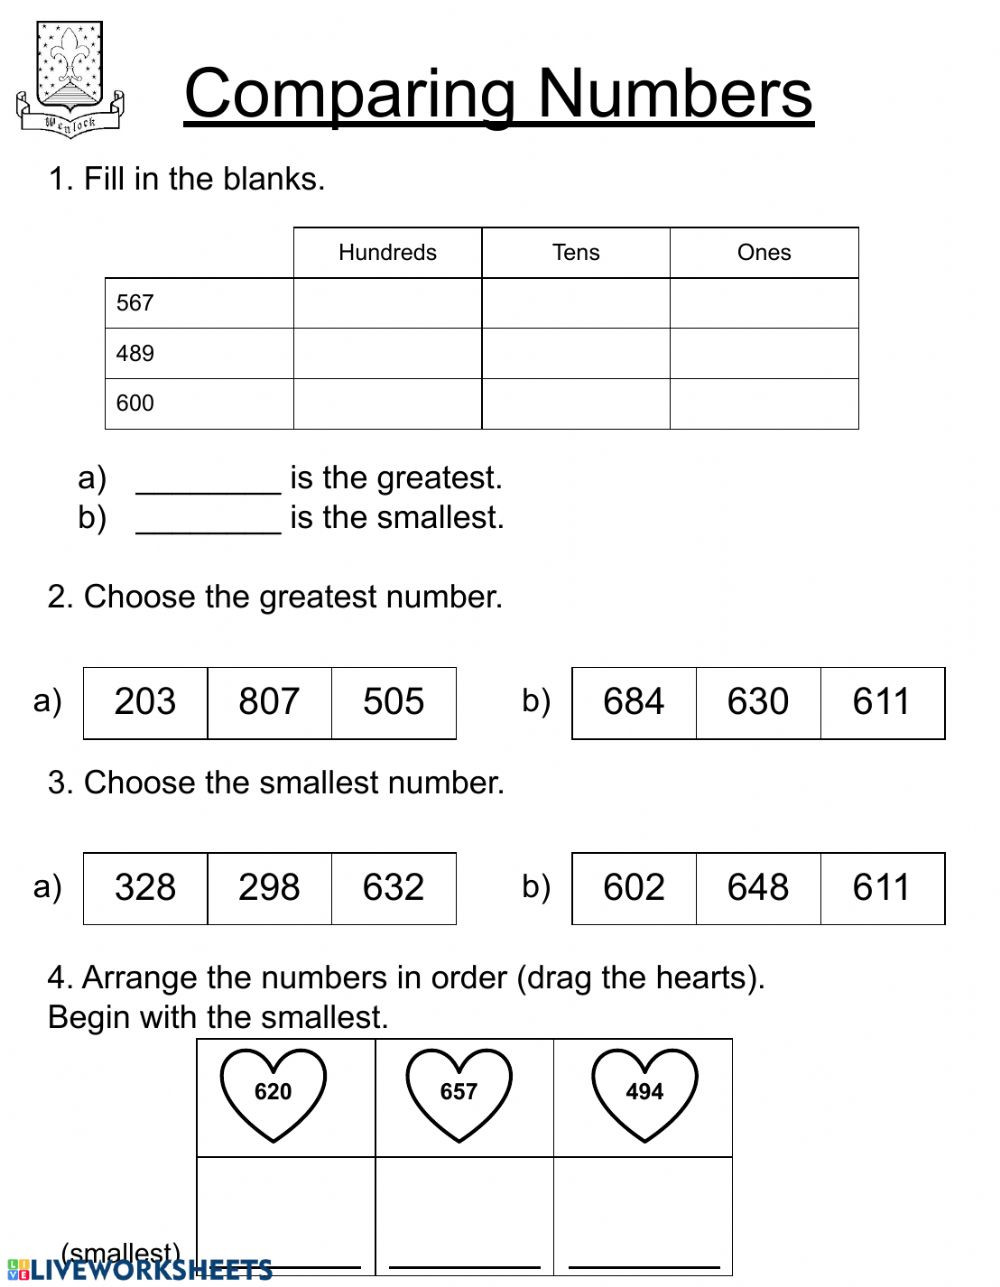 Comparing Numbers Worksheets 2nd Grade Paring Numbers Second Grade Interactive Worksheet